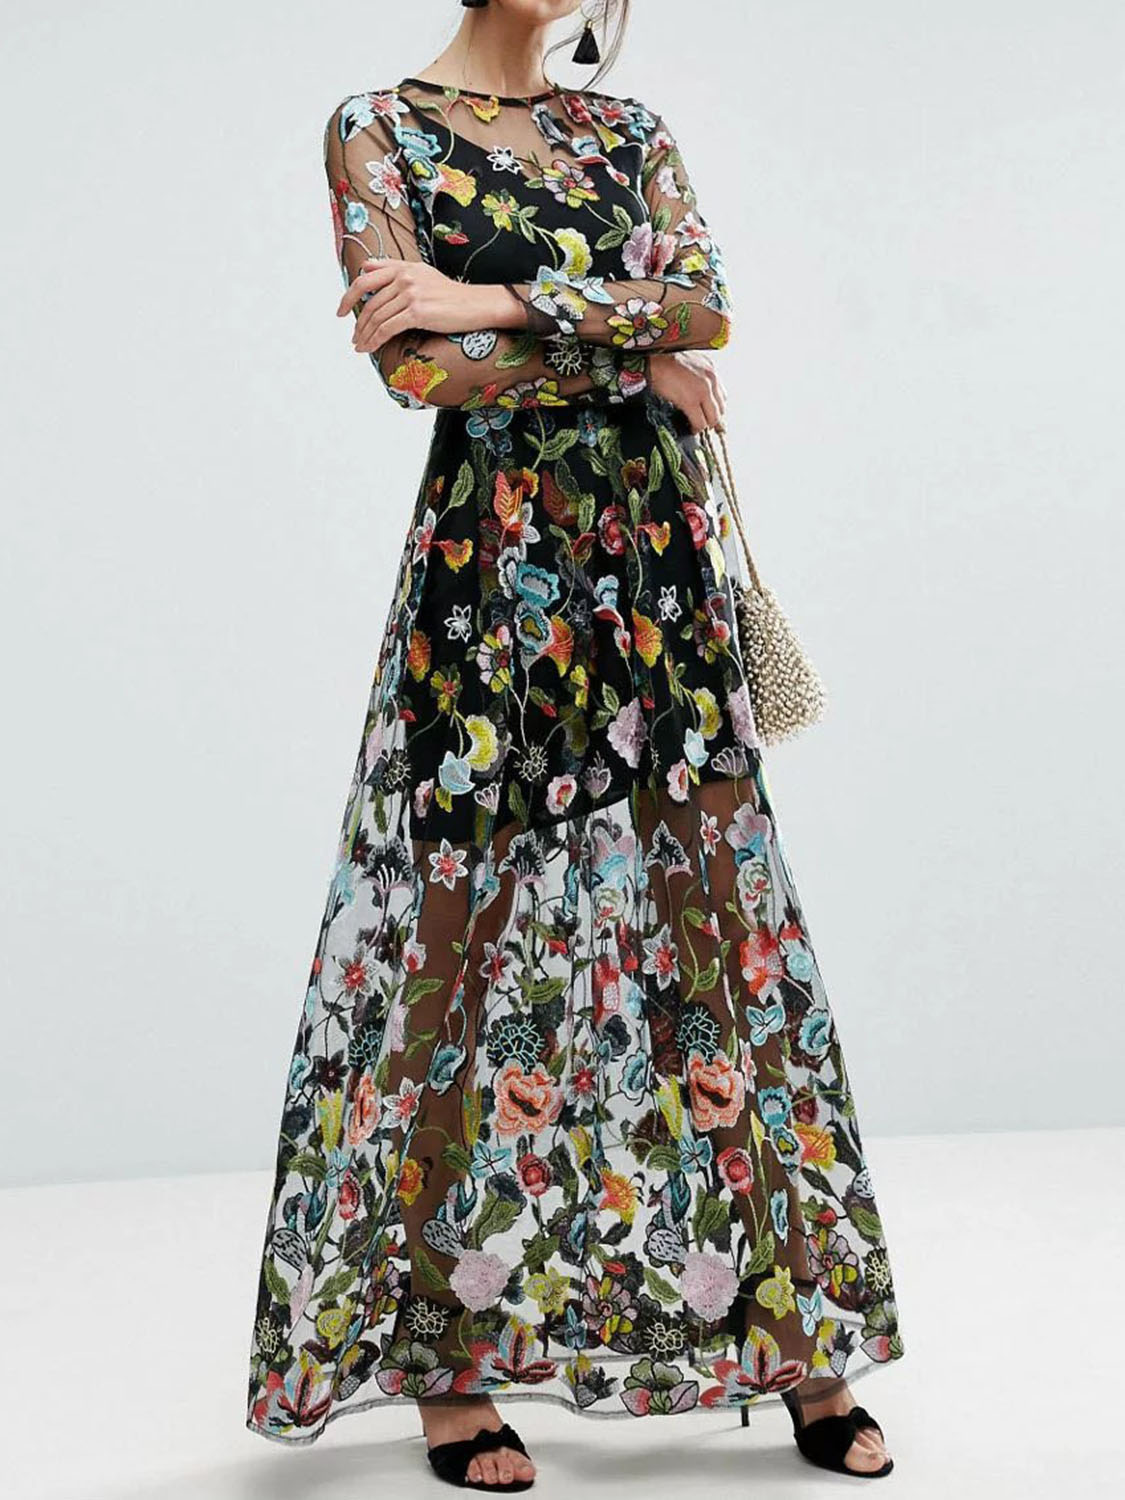 3a84a8e0bd805 Buy Black Embroidery Floral Long Sleeve Sheer Mesh Maxi Dress from ...